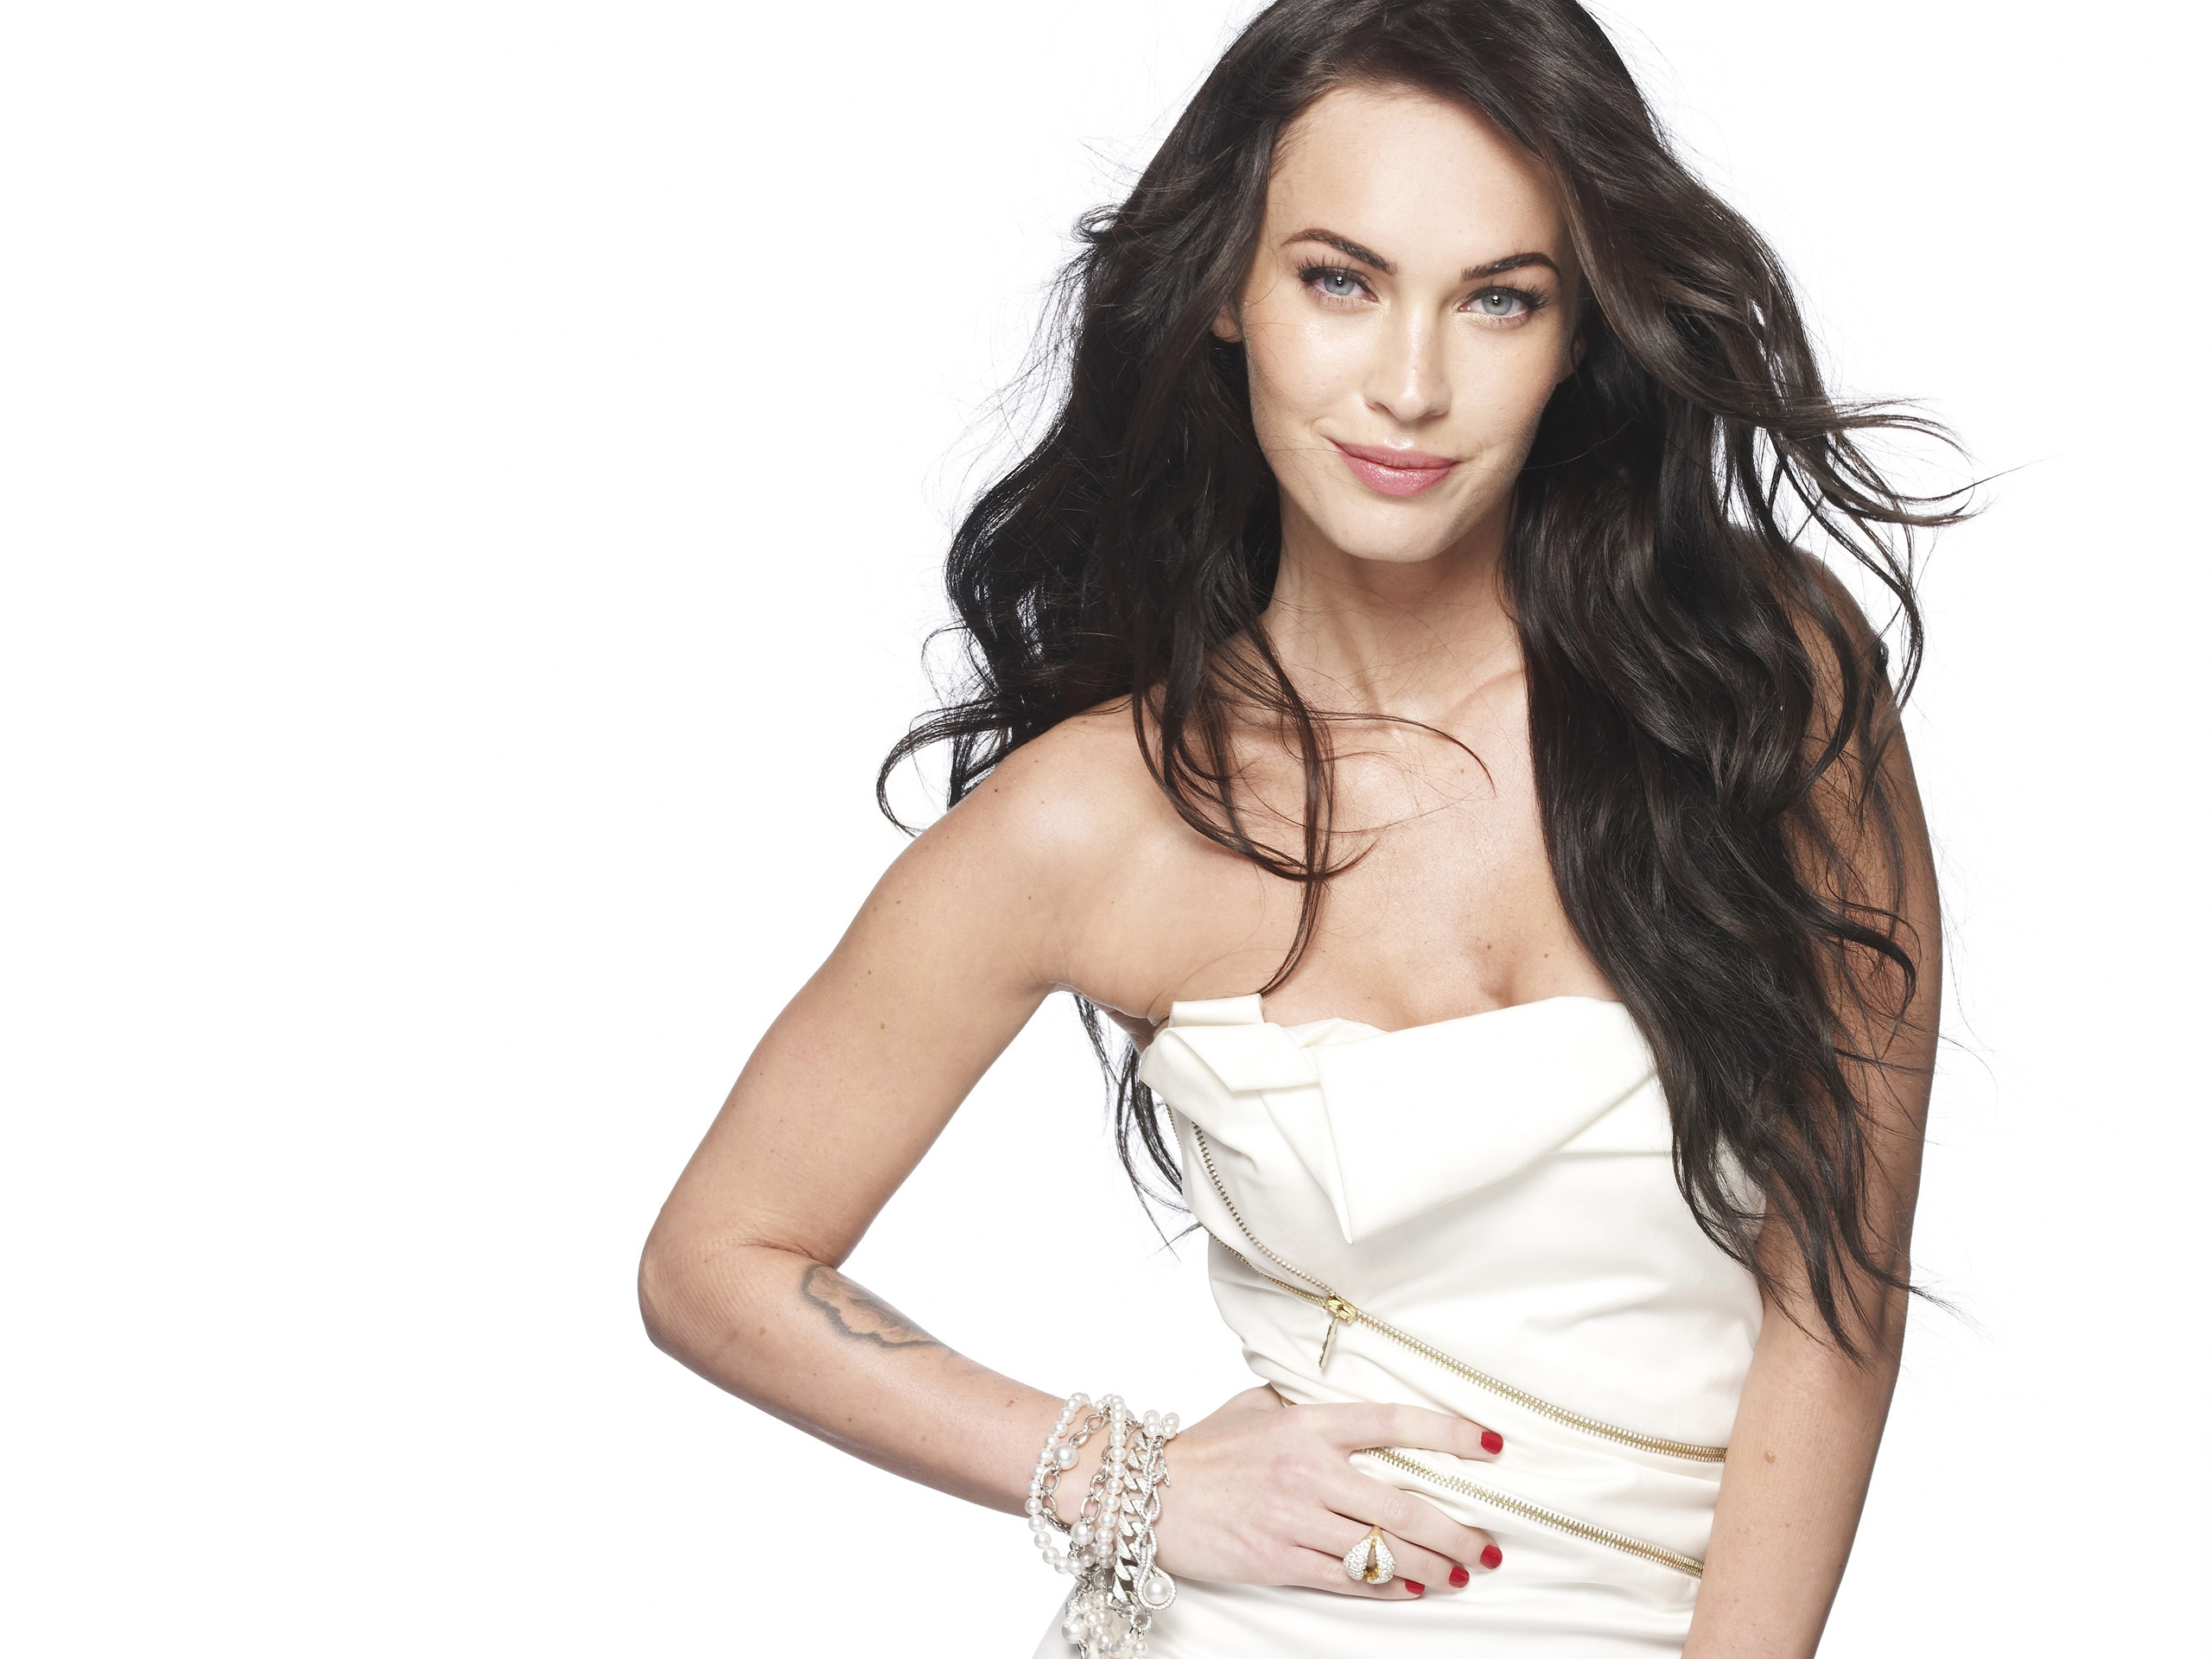 Free TV & Movies Picture - Megan Fox Post in Pixel of ... Megan Fox Wallpaper Black And White